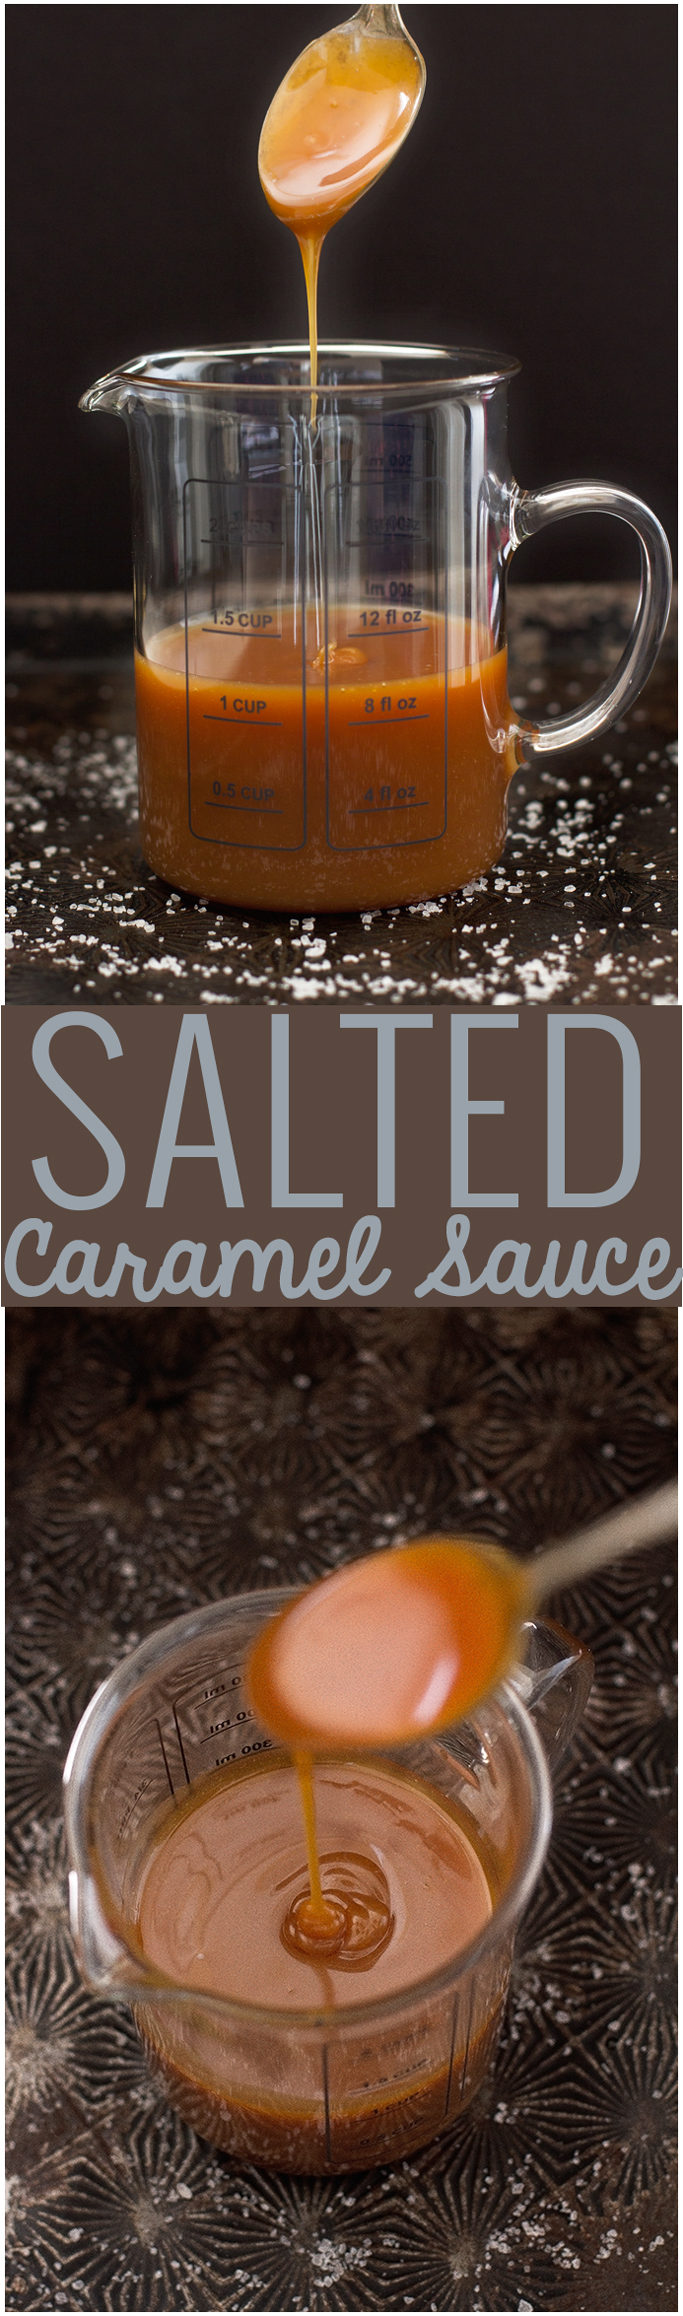 5 Ingredient Salted Caramel Sauce Recipe - Easy to make and good on everytihing! #saltedcaramelsauce #caramelsauce #easycaramelsauce | Littlespicejar.com